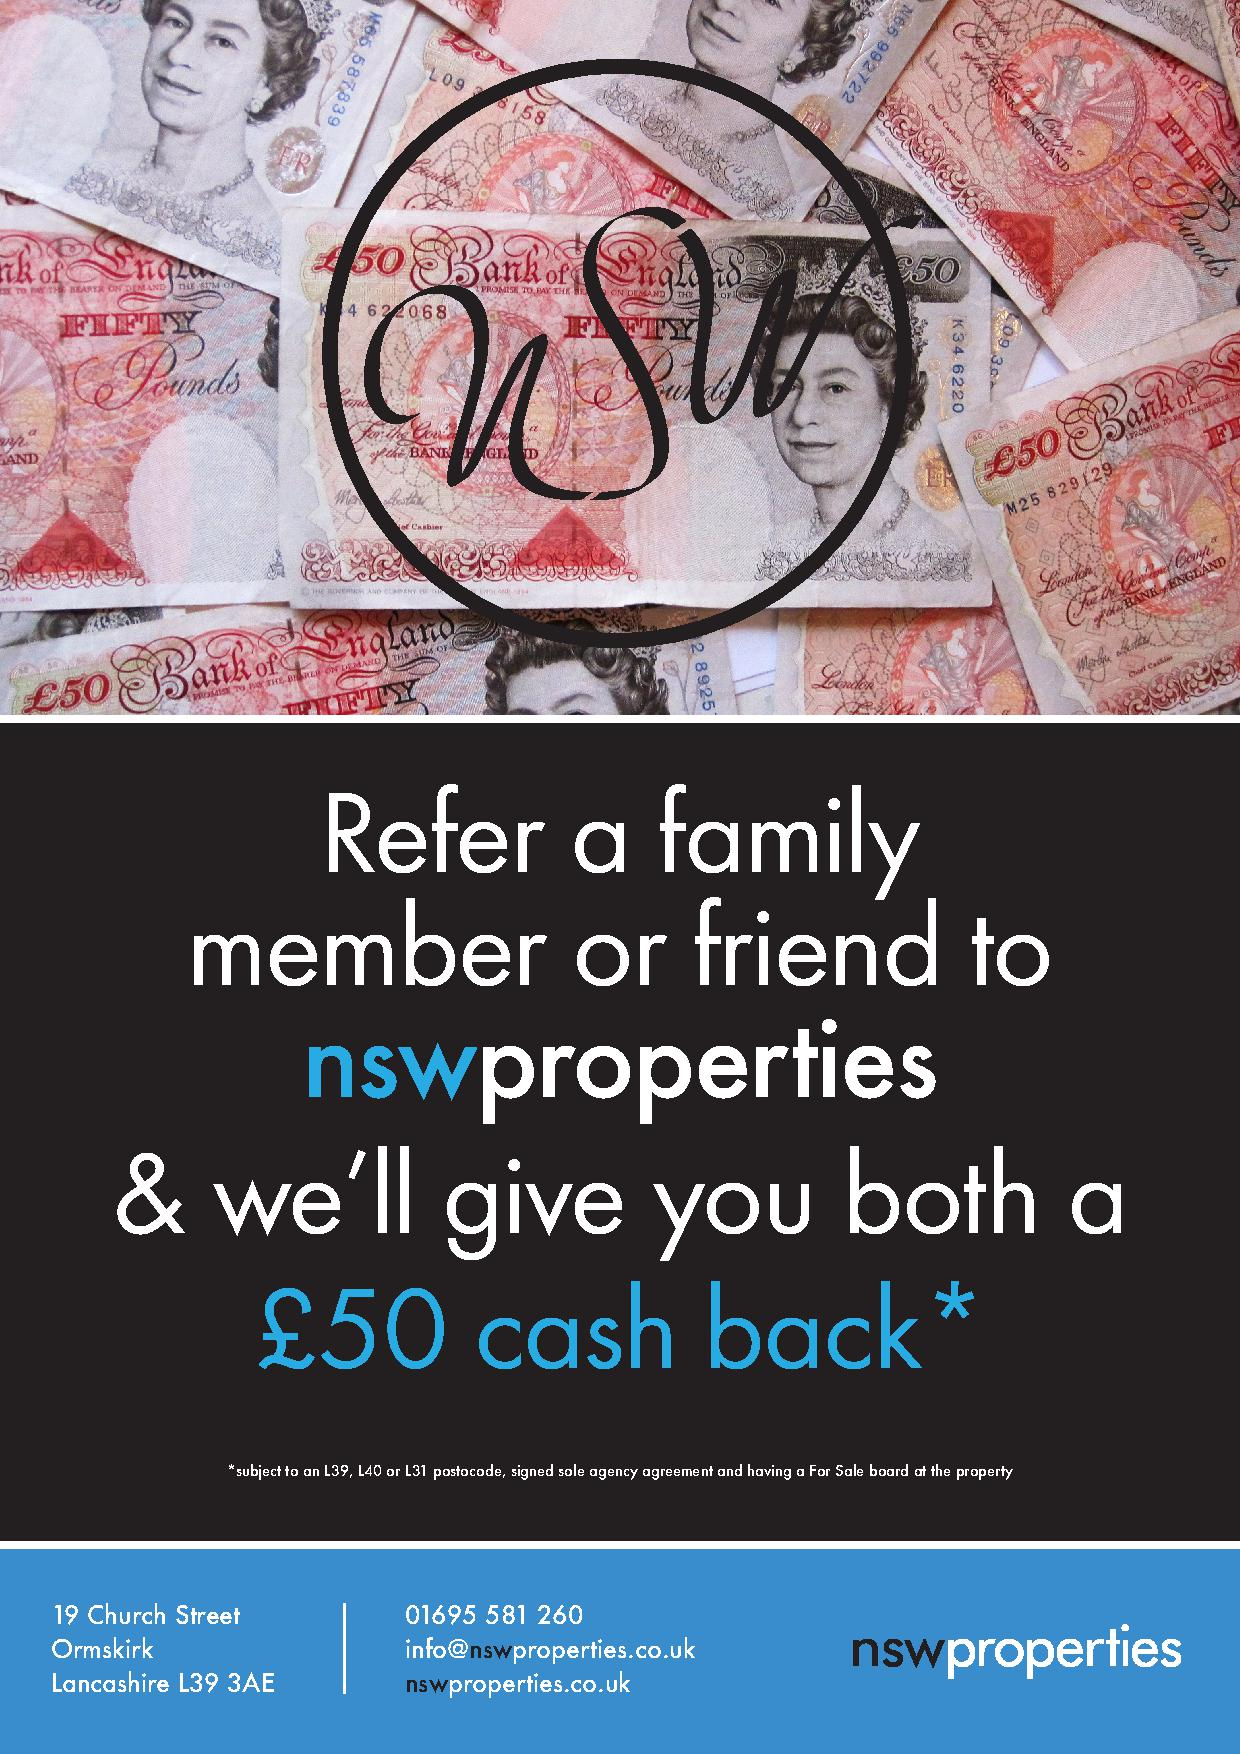 WIN £50 CASH BACK!